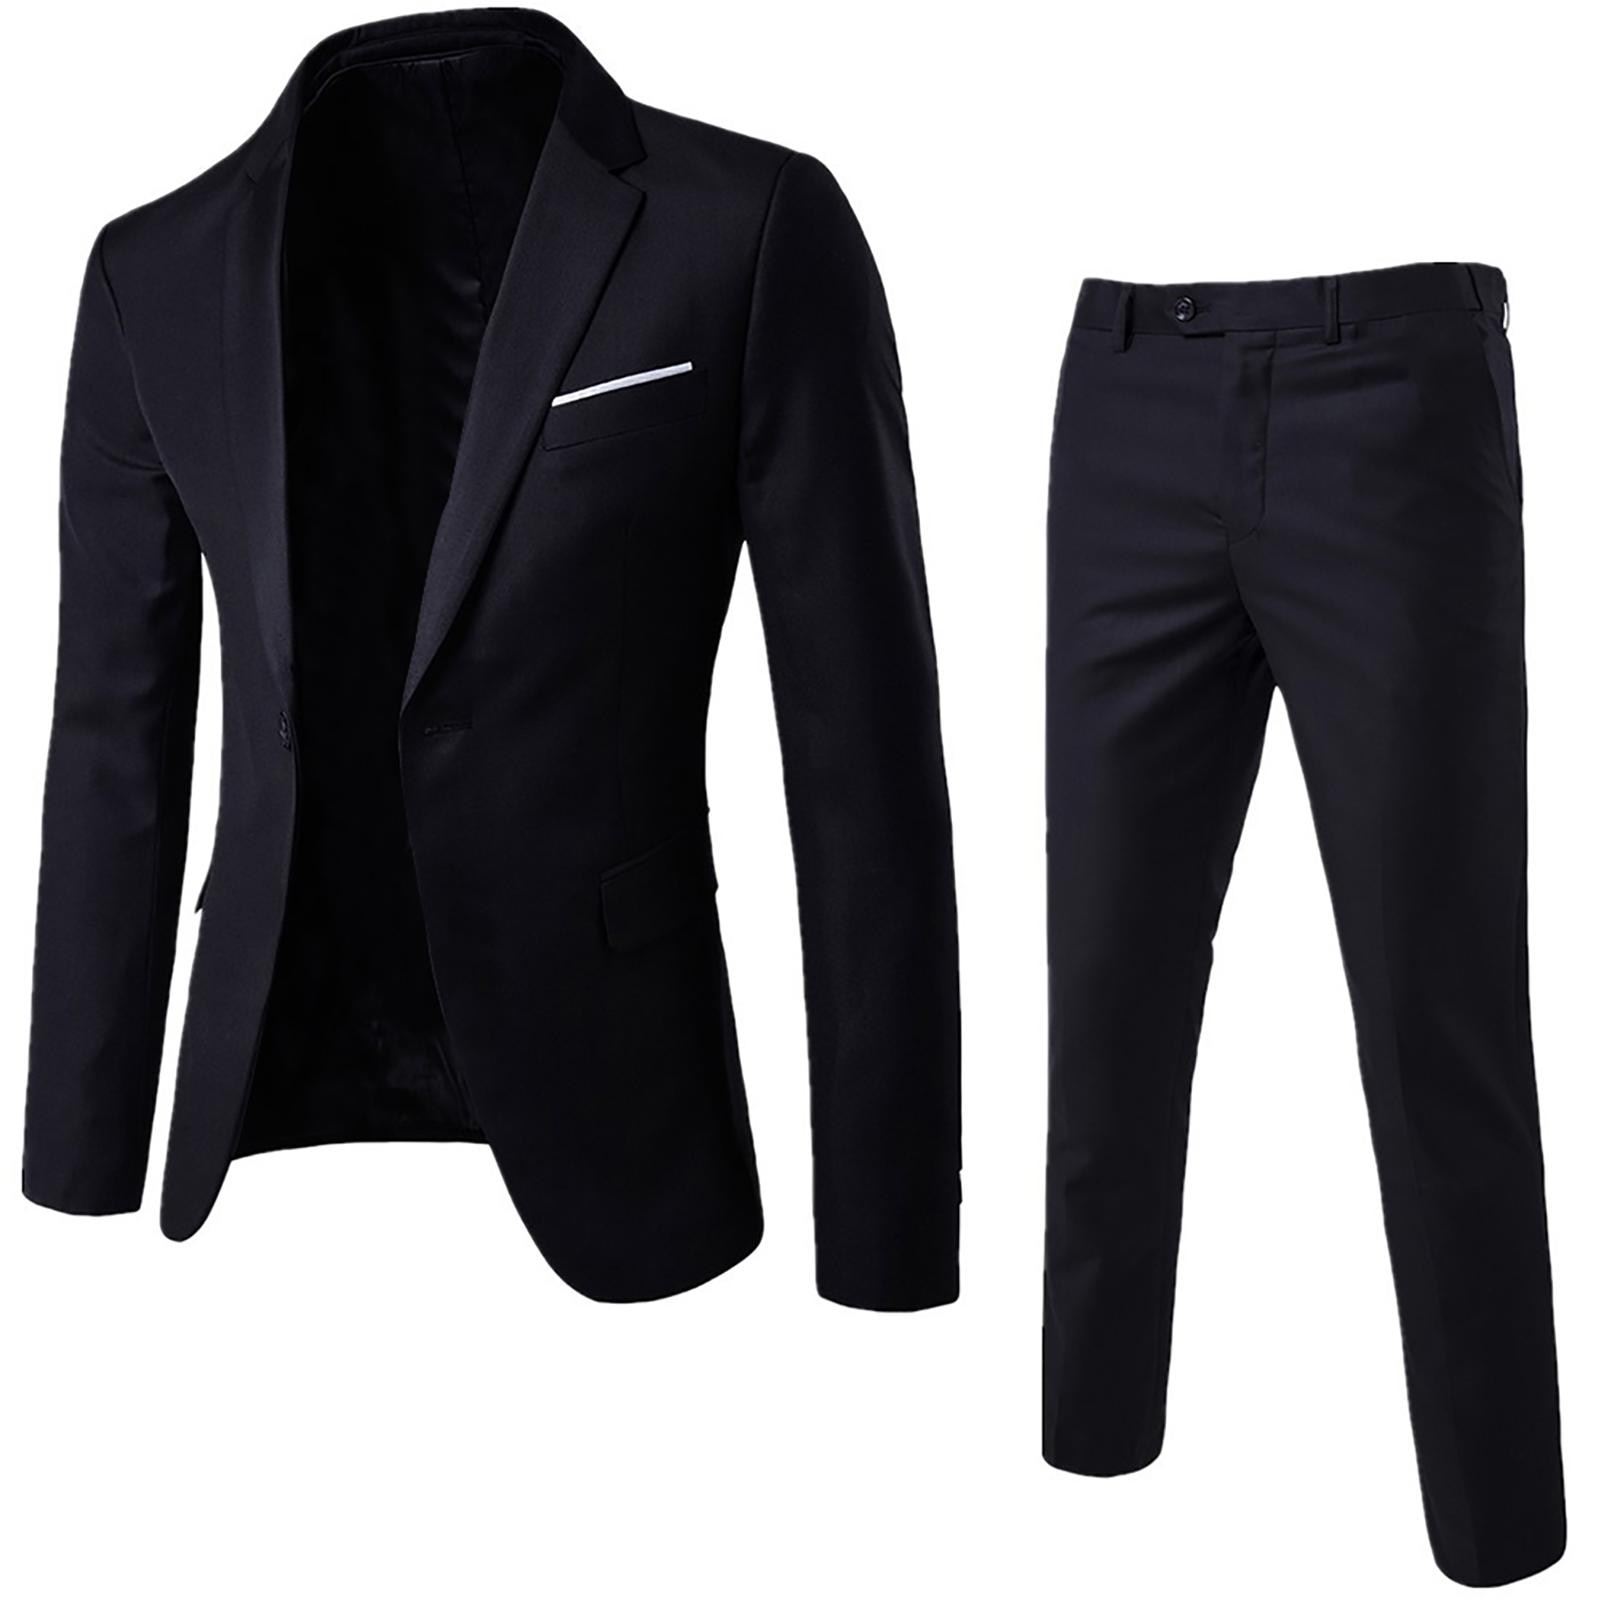 2020 Black Men's Suit 2 Pieces Plus Size Men Solid Color Long Sleeve Lapel Slim Button Business Suit For Wedding(Blazer+Pants)